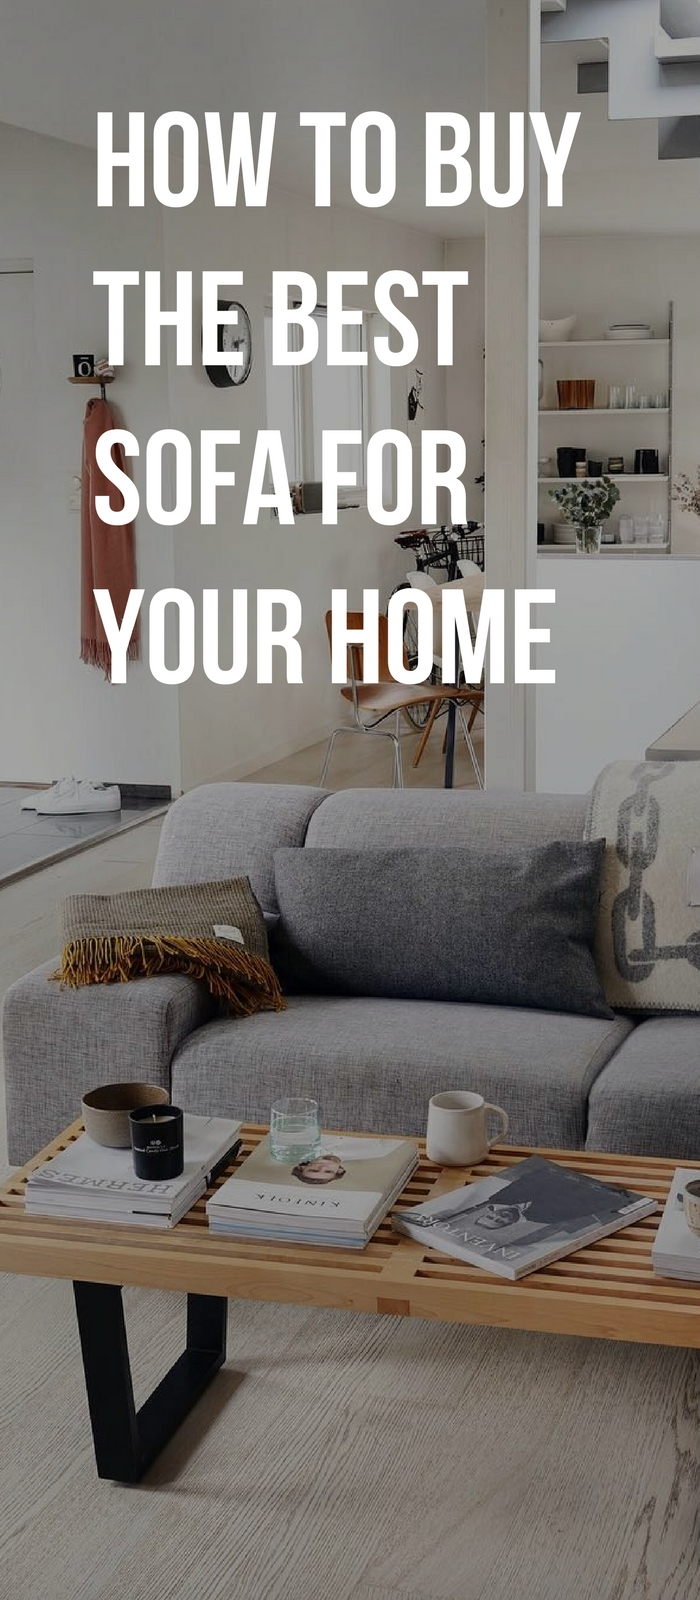 How to buy a sofa for your home